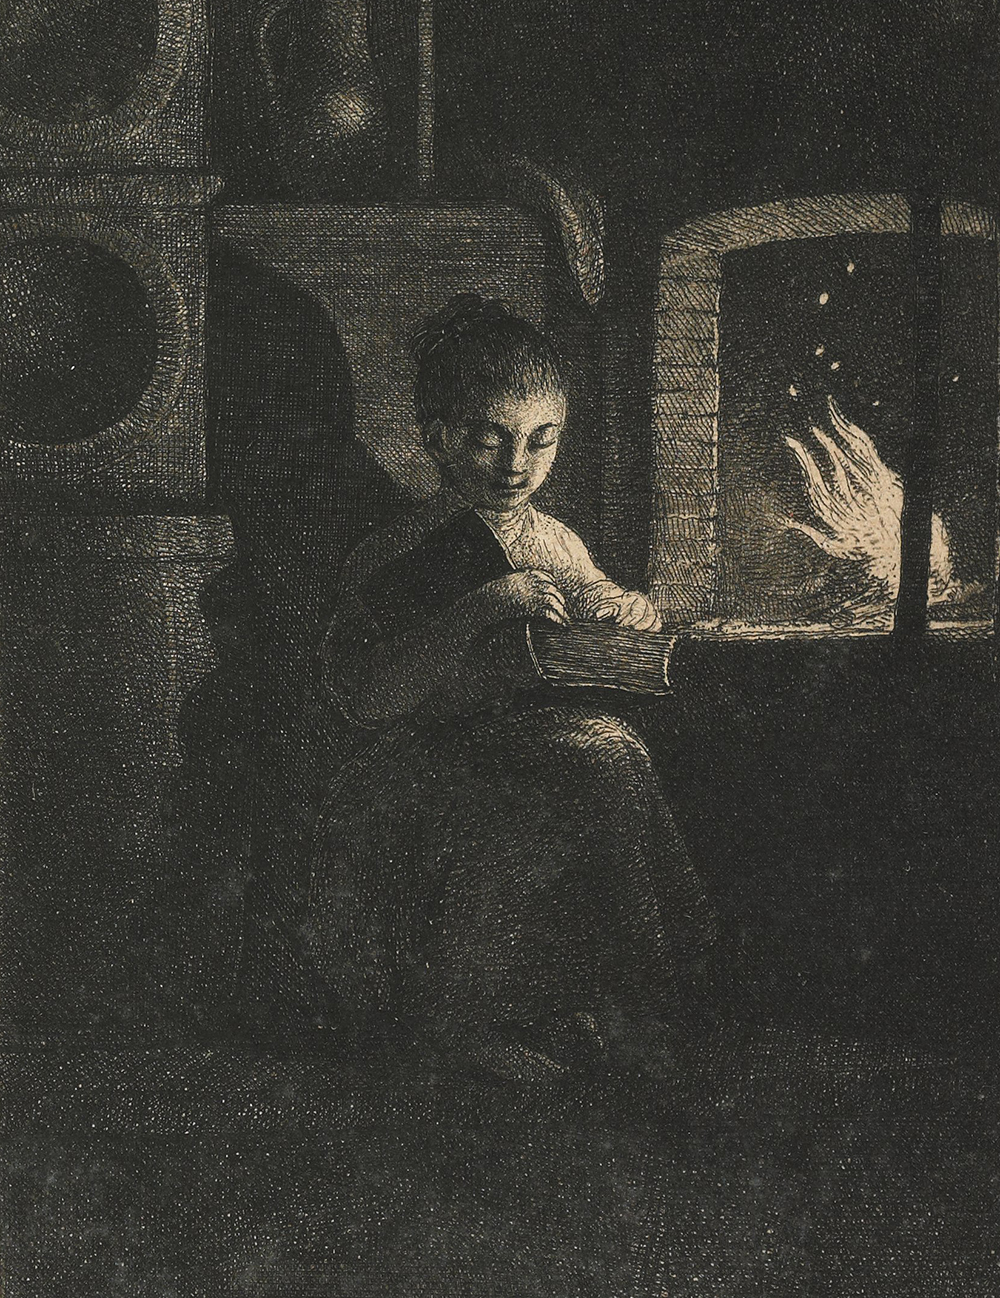 Young Girl Reading by a Fire, etching by Jean-Pierre Norblin de la Gourdaine, c. 1774. The Minneapolis Institute of Art, Gift of John E. Andrus III.